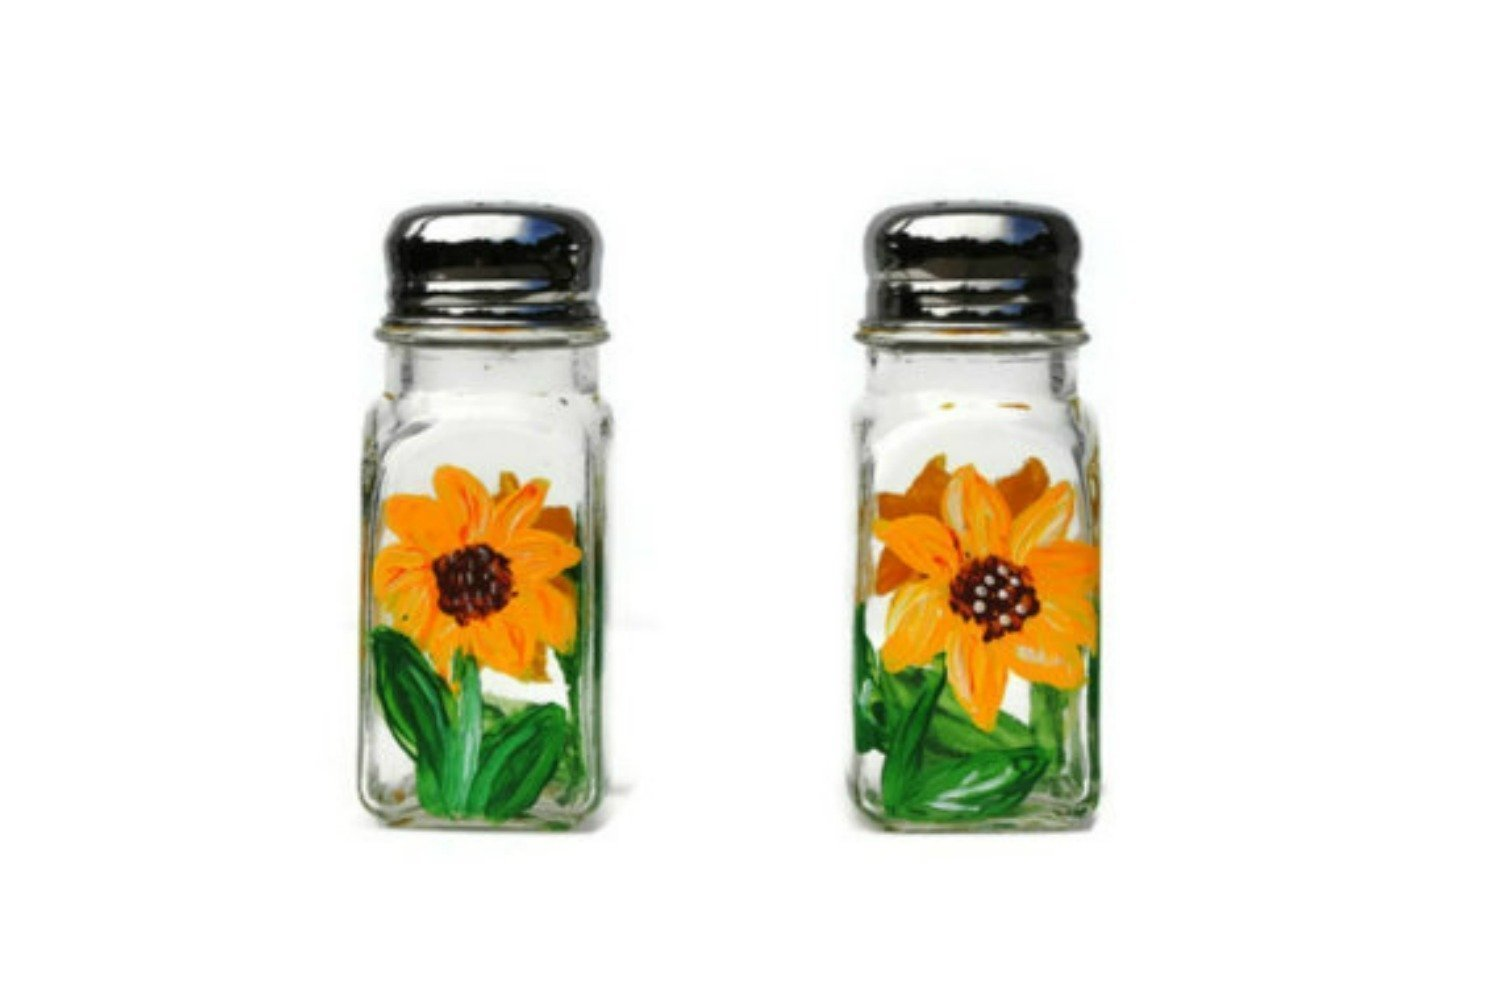 Hand Painted Yellow Sunflowers Glass Salt and Pepper Shakers Set, Floral Kitchen Decor